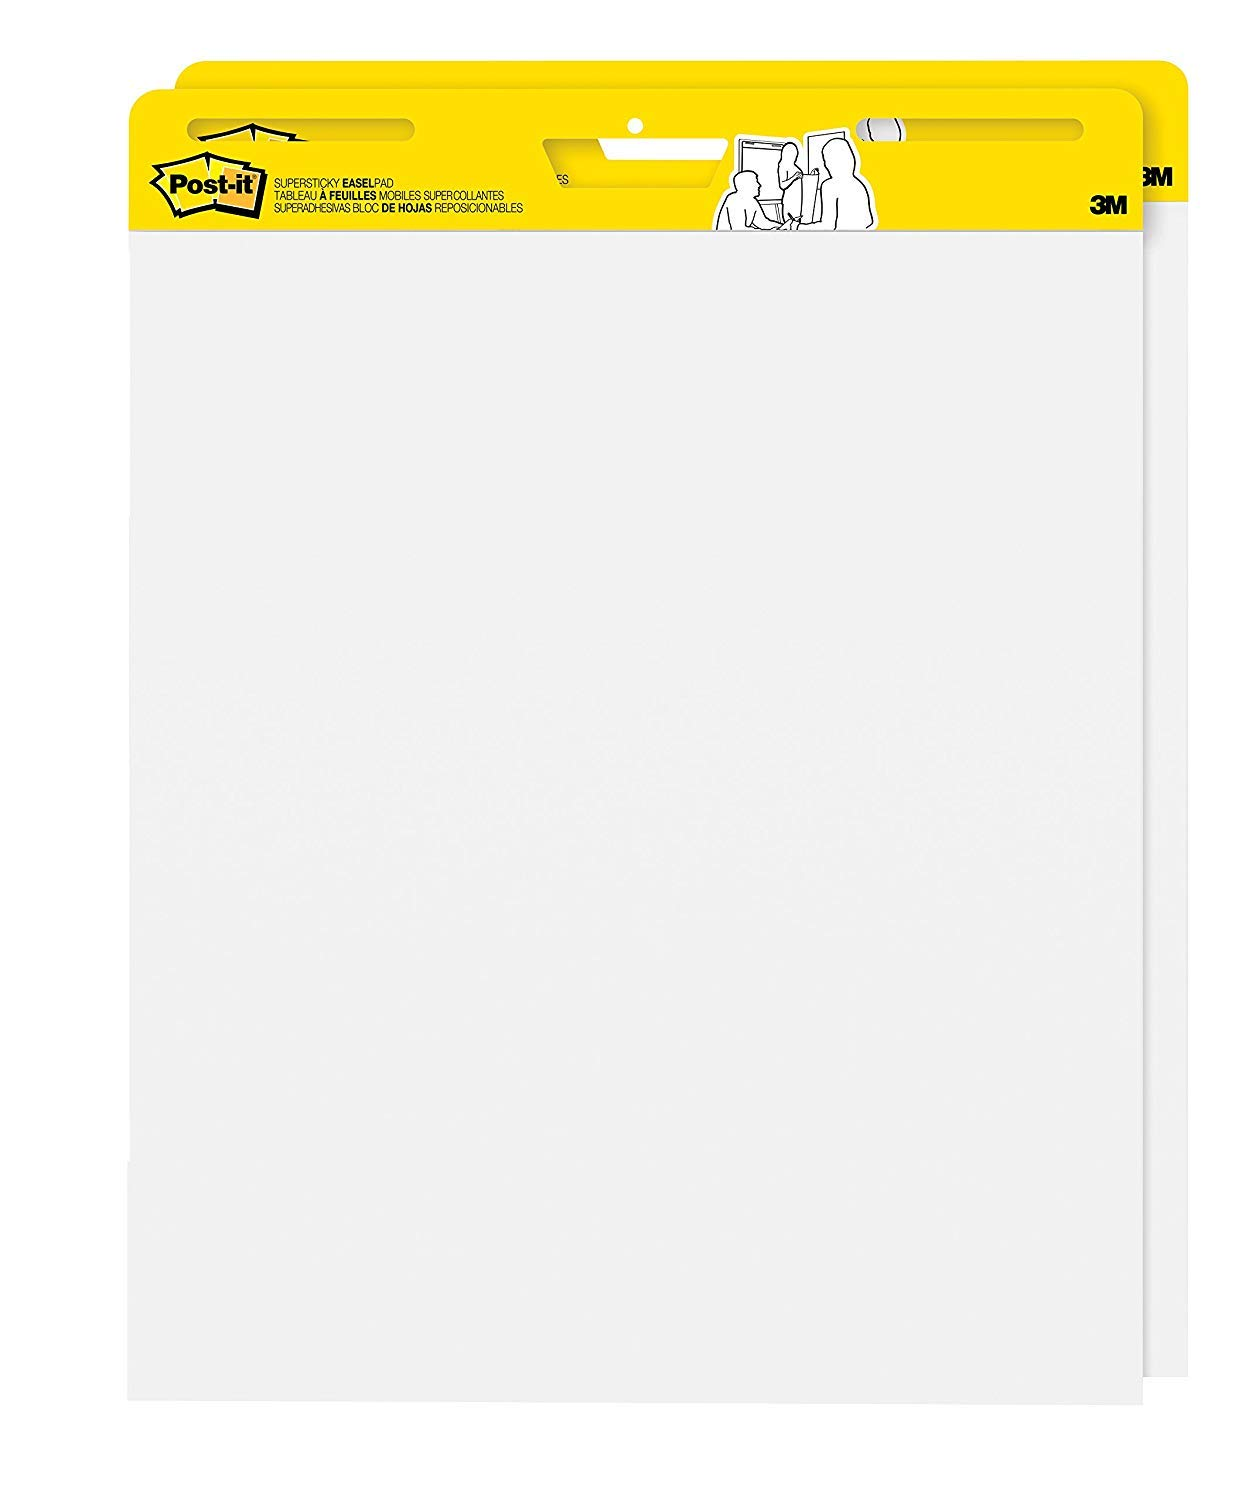 Large White Premium Self Stick Flip Chart Paper LLS 25 x 30 Inches Super Sticking Power Post-it Super Sticky Easel Pad 4 Pads 30 Sheets//Pad